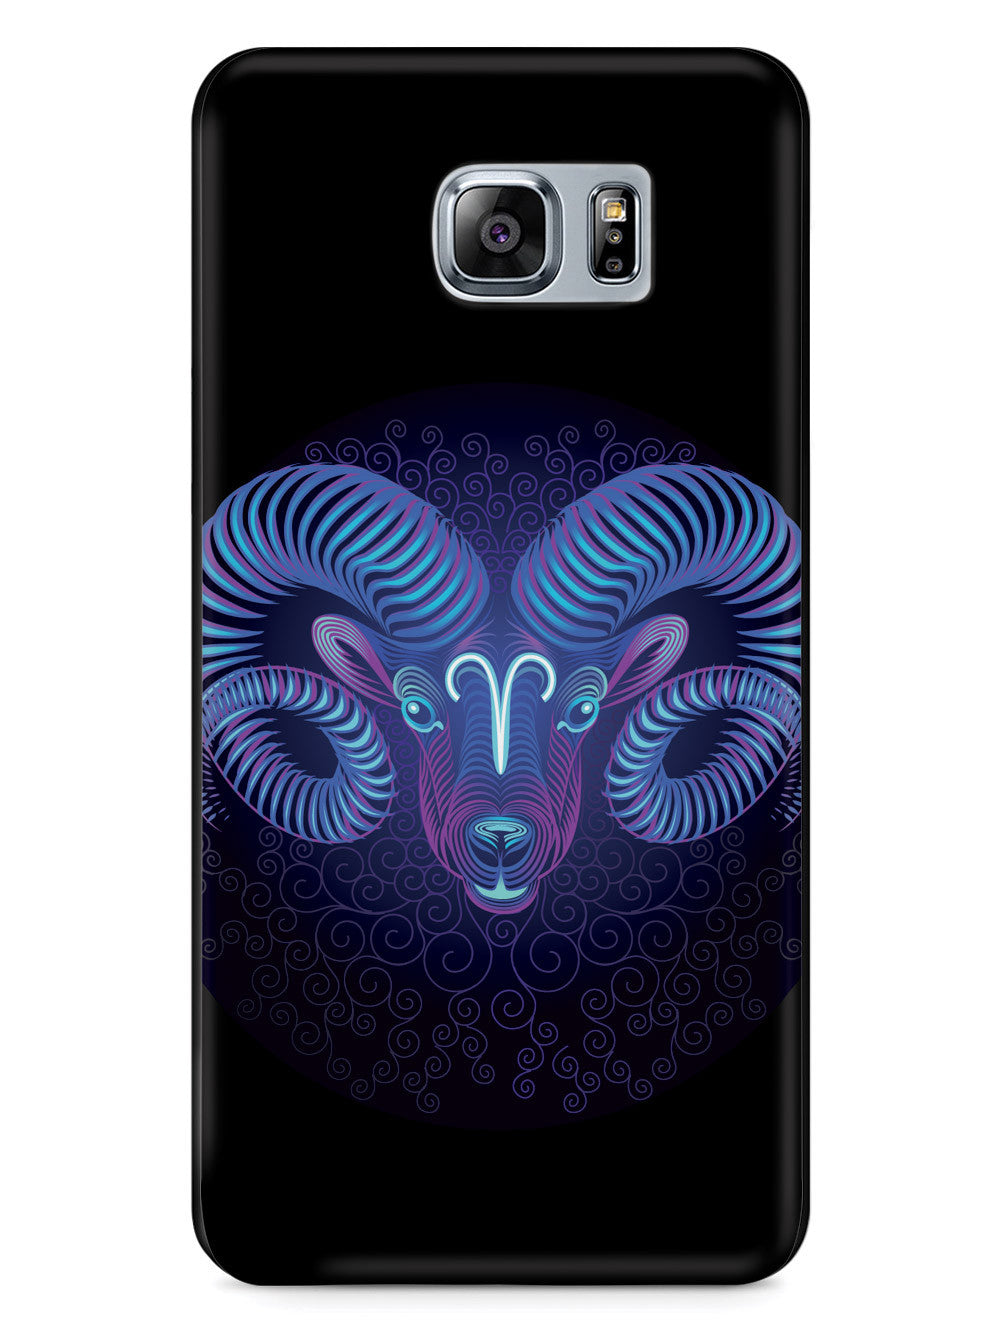 Neon Zodiac - Aries Case